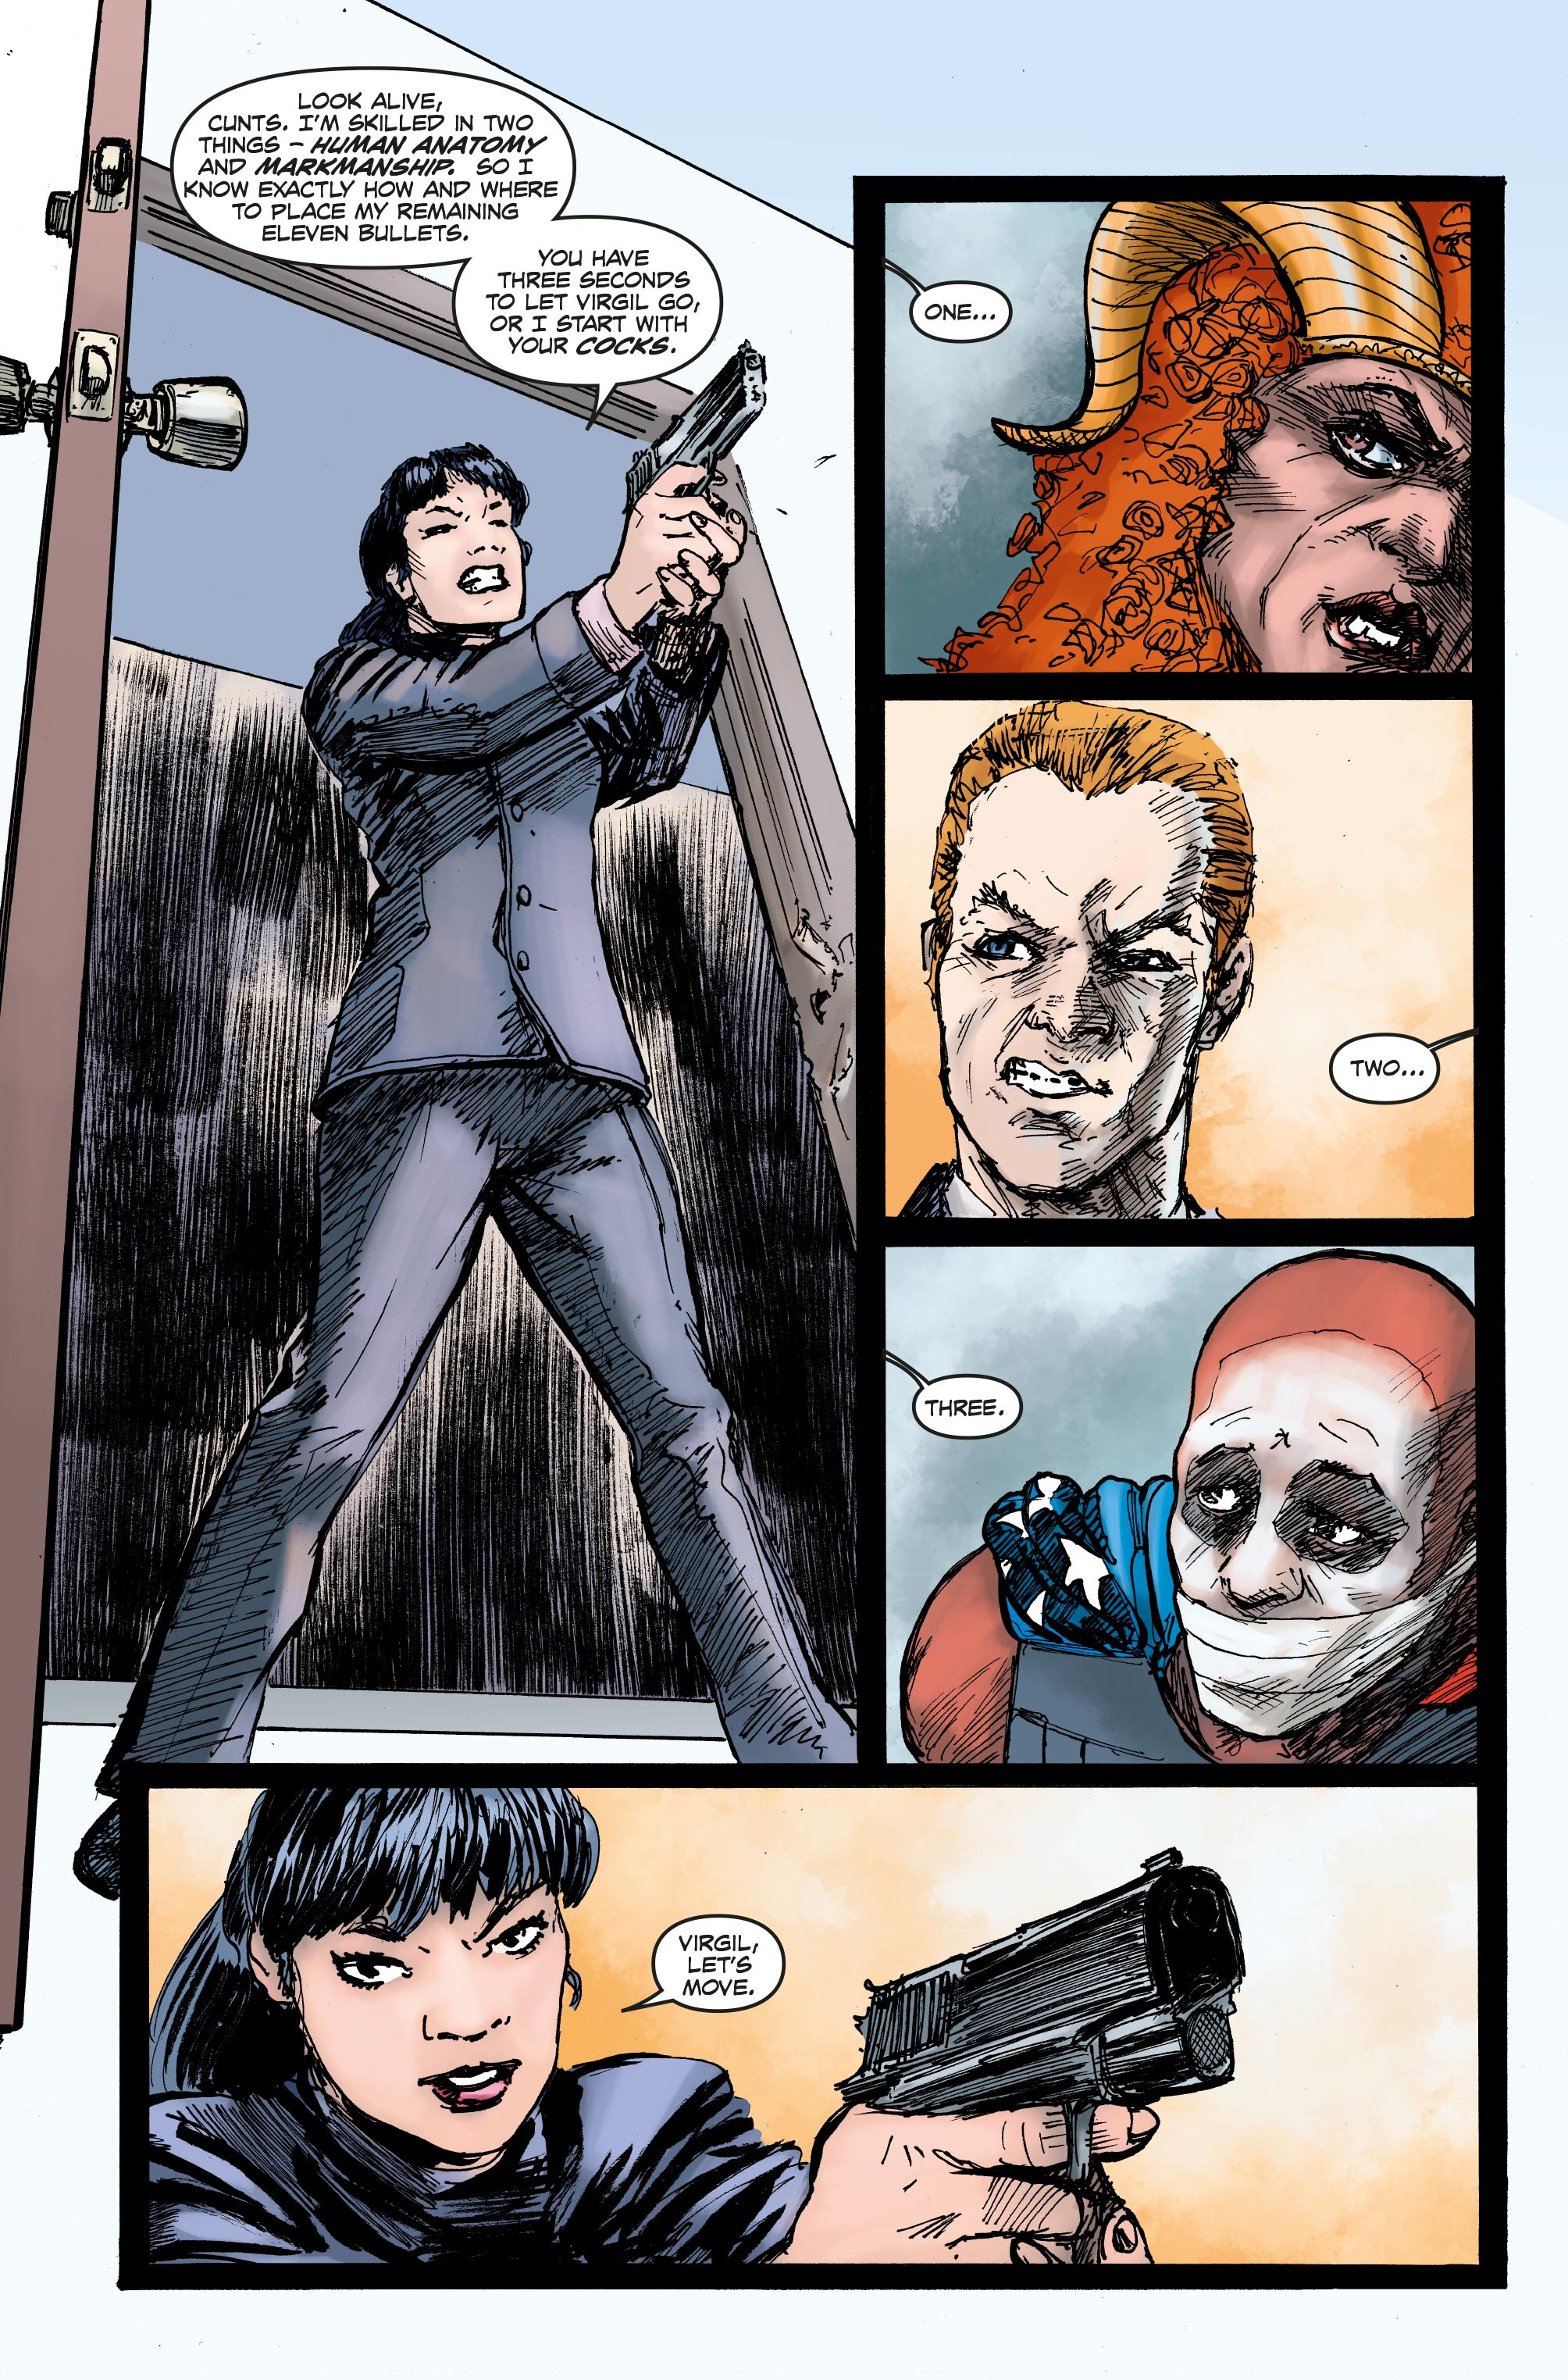 Bloodthirsty #5 Preview PageBloodthirsty #5 Preview Page